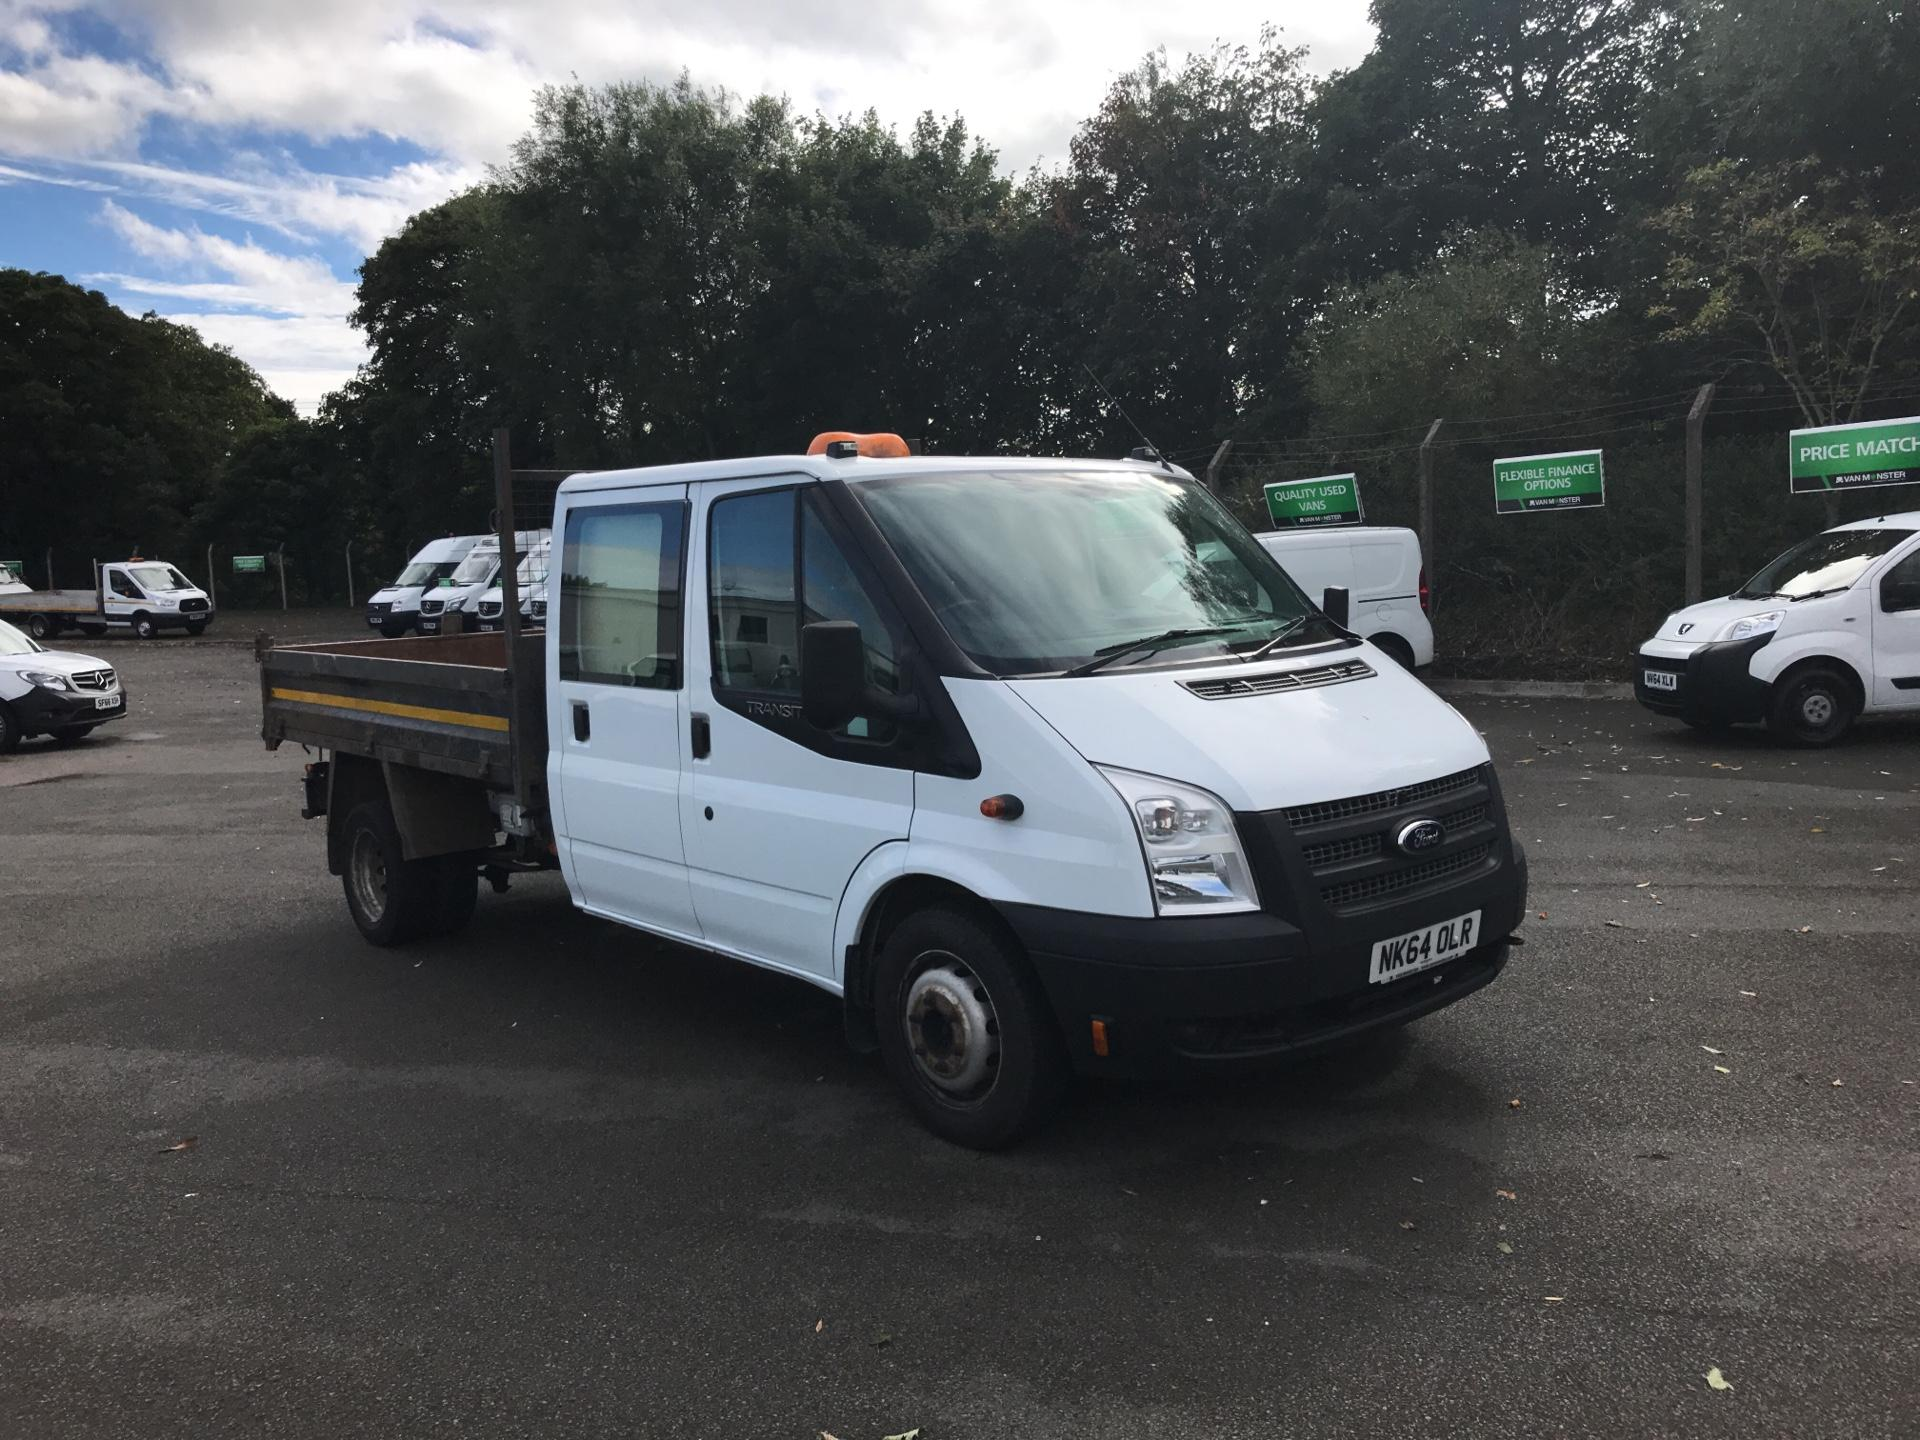 2014 Ford Transit T350 D/CAB TIPPER EURO 5 STORAGE CONVERSION *VALUE RANGE VEHICLE - CONDITION REFLECTED IN PRICE* (NK64OLR)